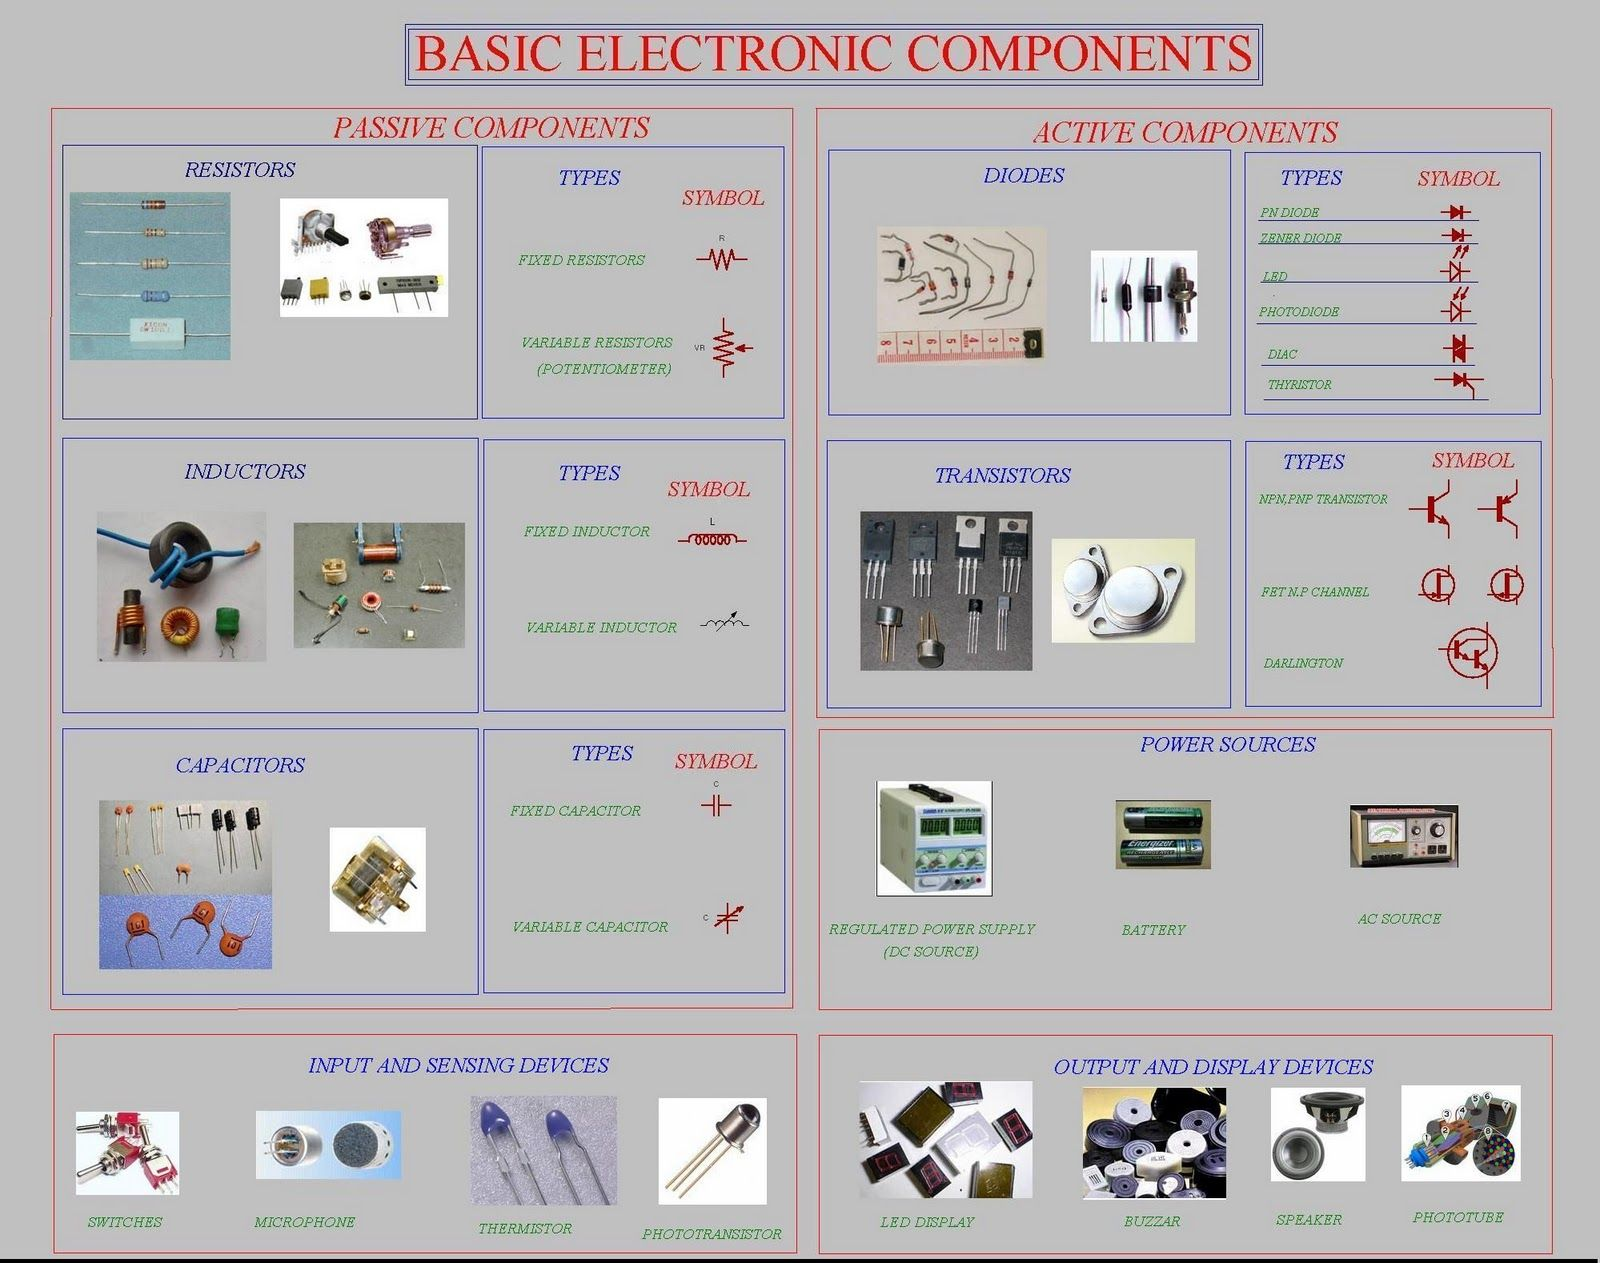 Electronics components chart also best images in circuit diagram computers rh pinterest